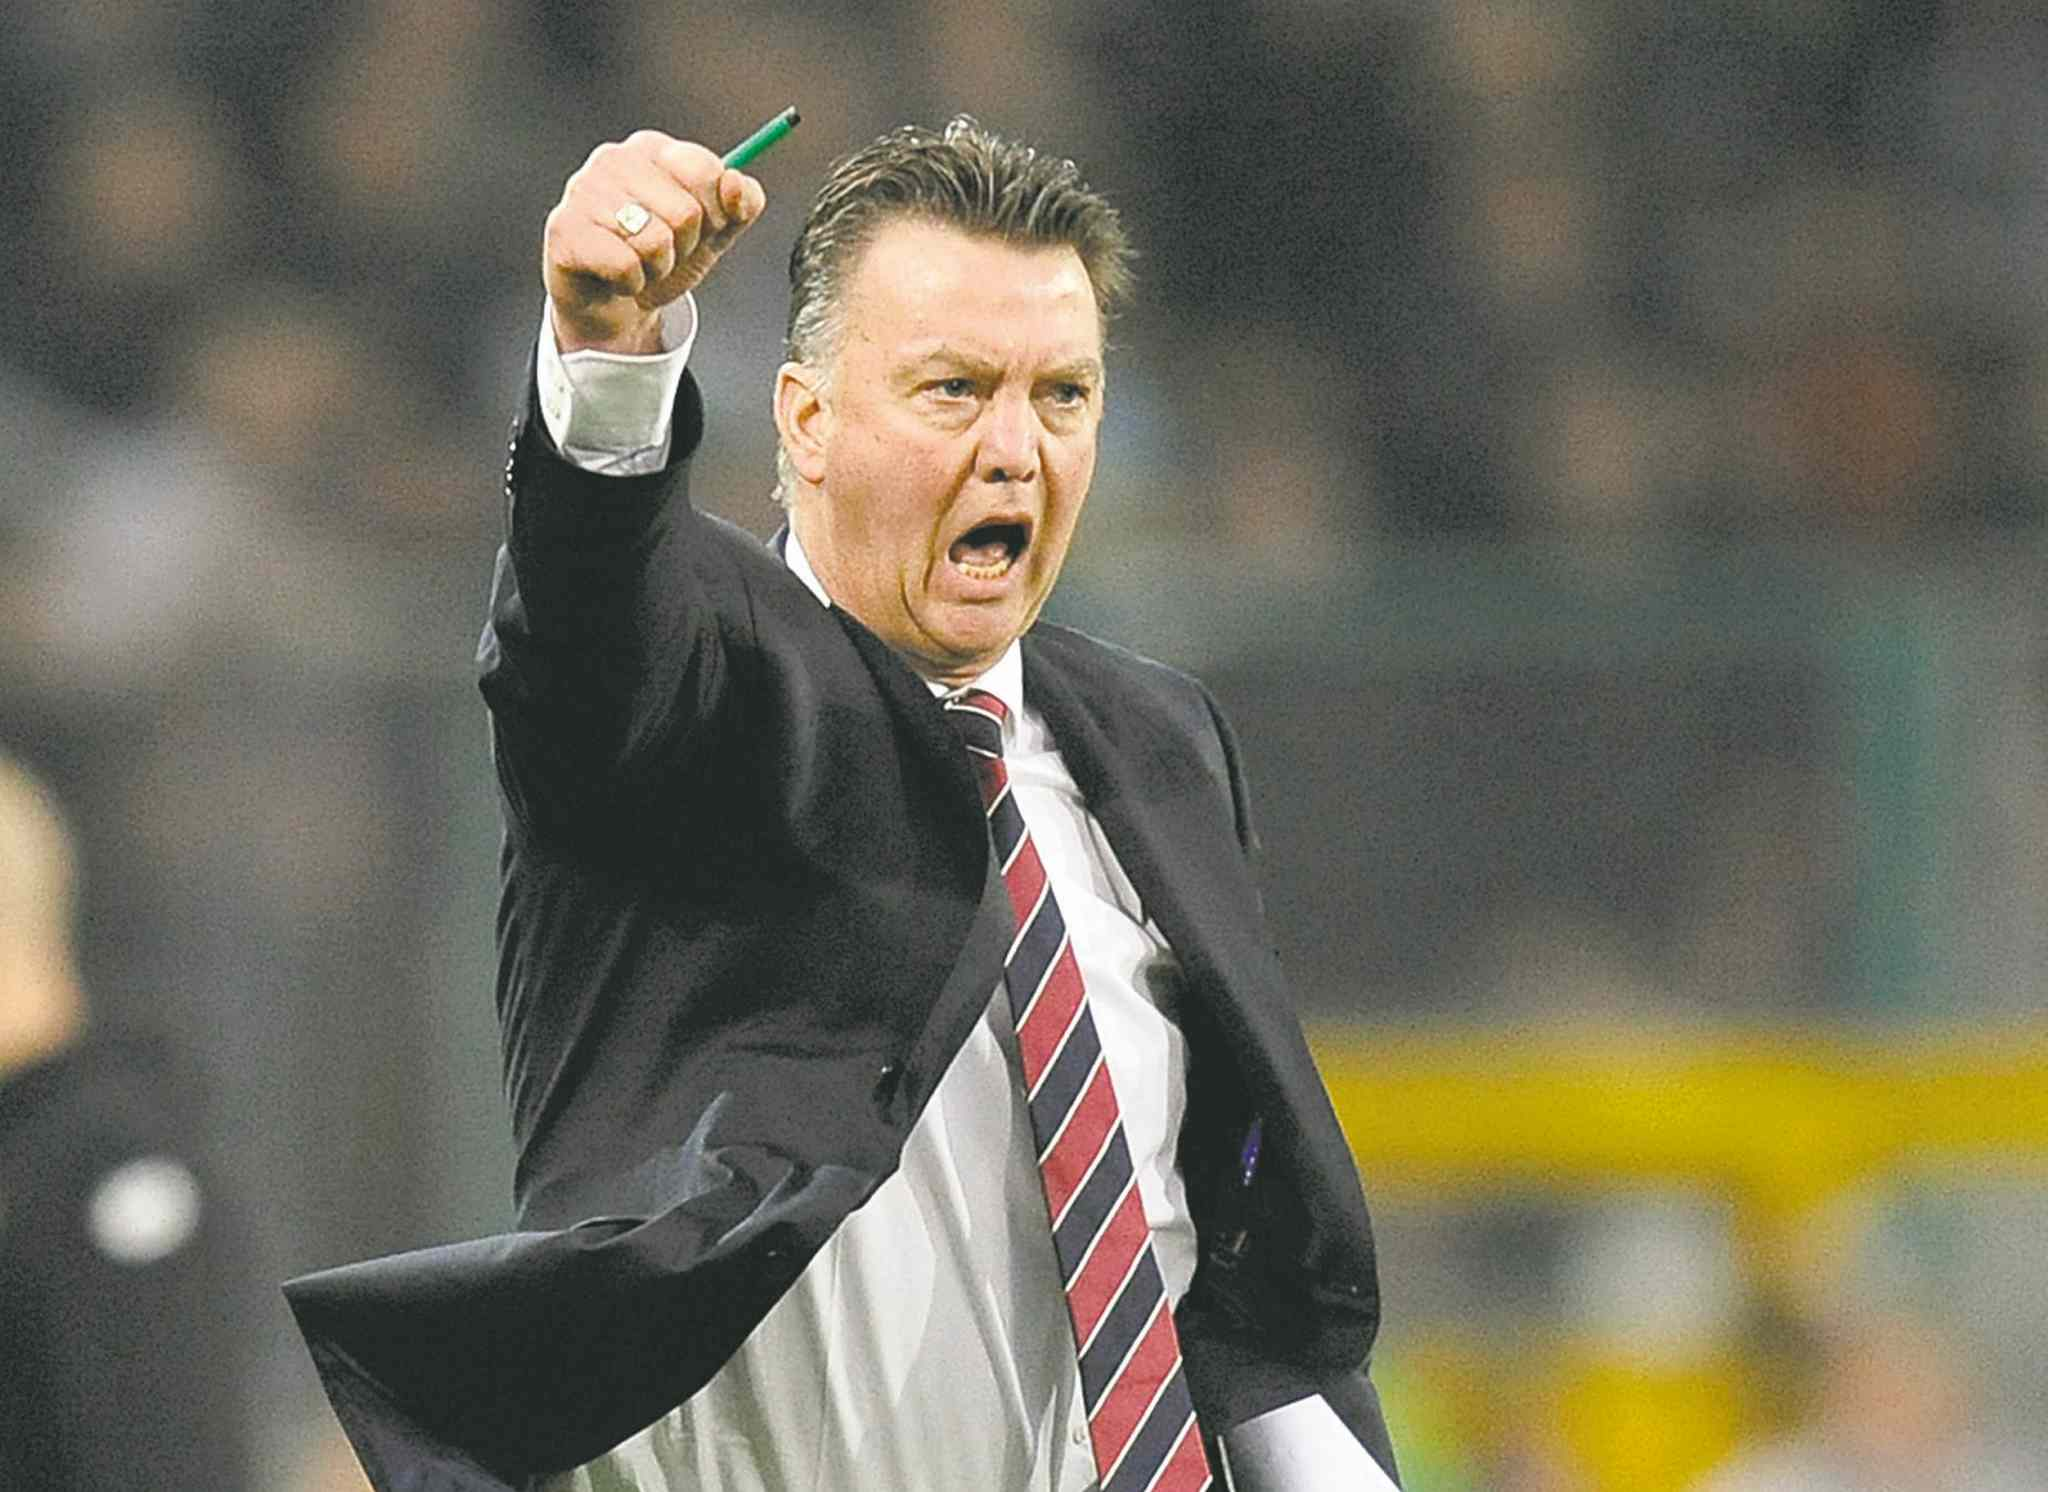 Louis van Gaal of the Netherlands is pegged by many to take over the reins at Manchester United next season.